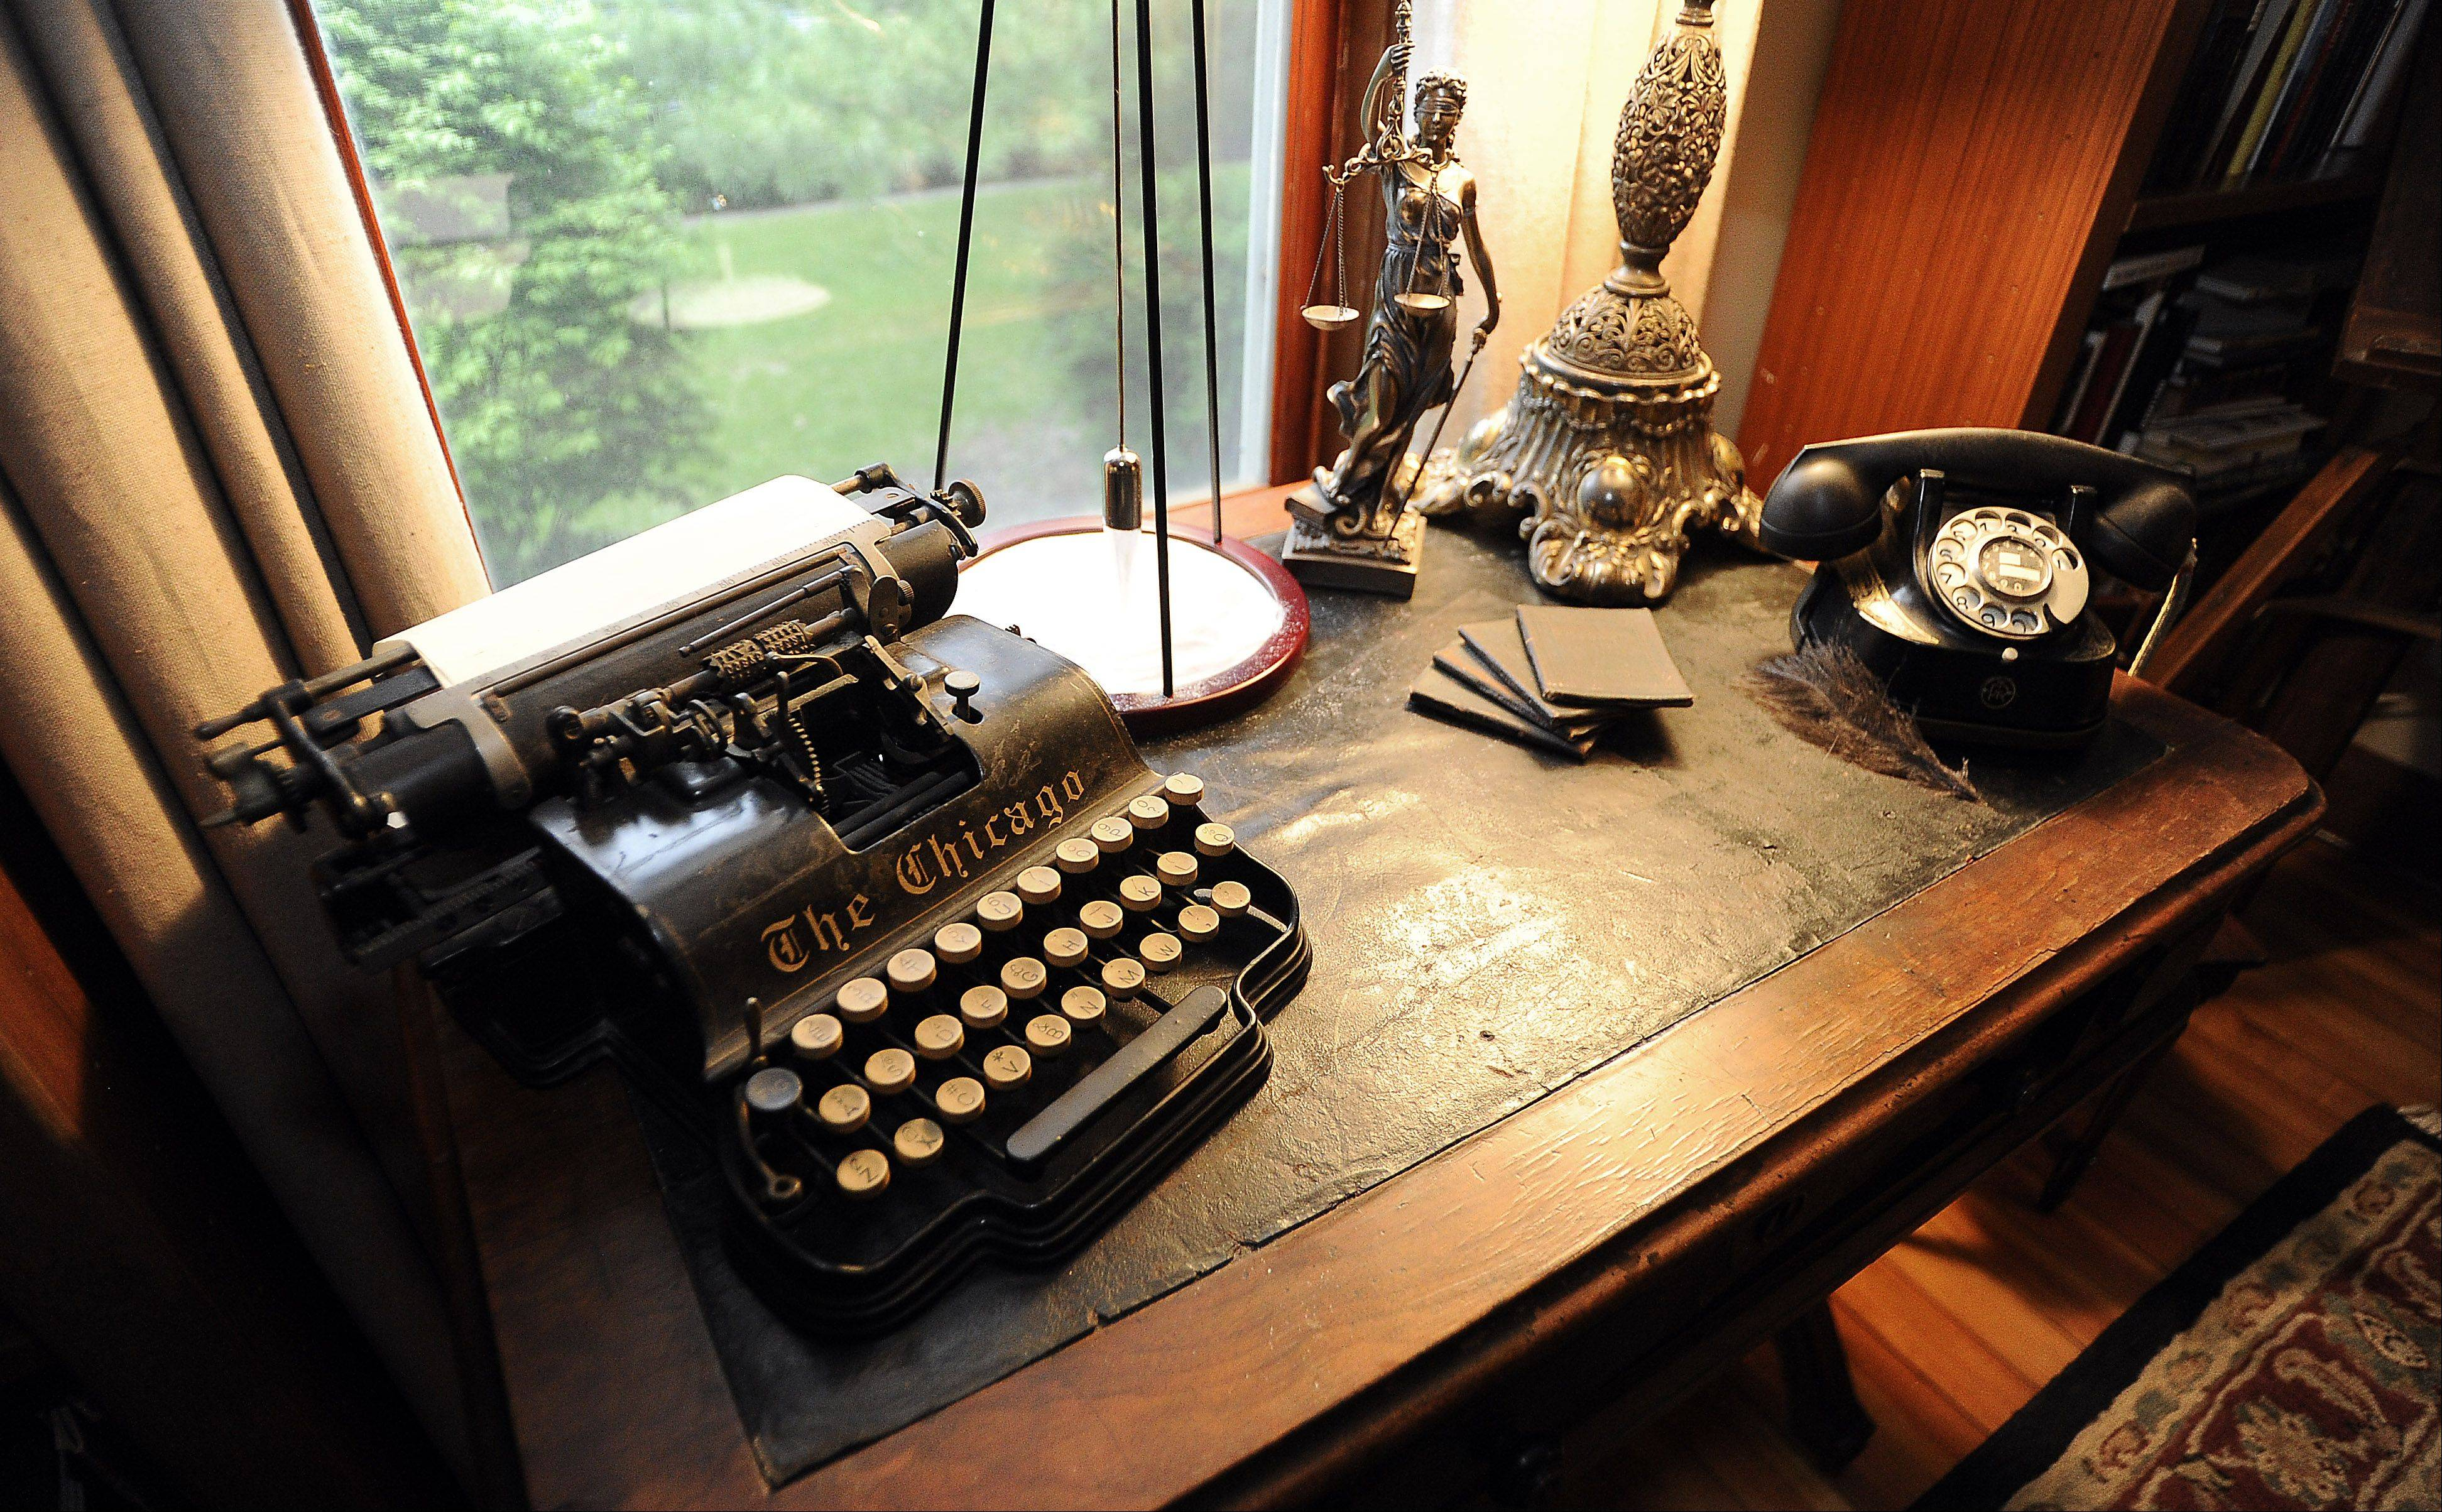 The Chicago, a typewriter about the same age as the house, and a rotary telephone from a Belgian hotel decorate the library in Laurie Turpin-Soderholm and Rob Soderholm's home.